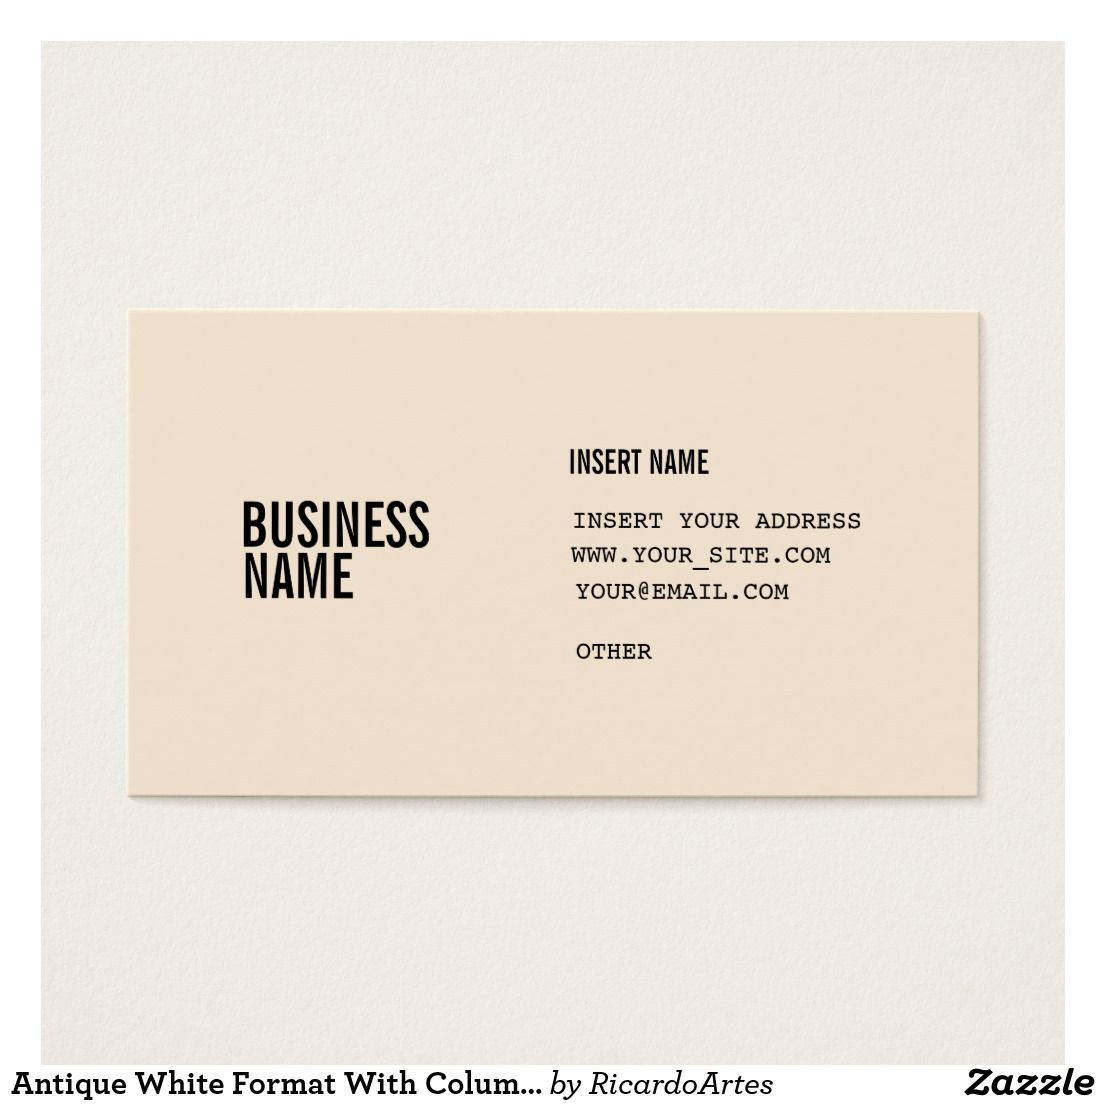 Antique White Format With Columns Condensed Fonts Business Card